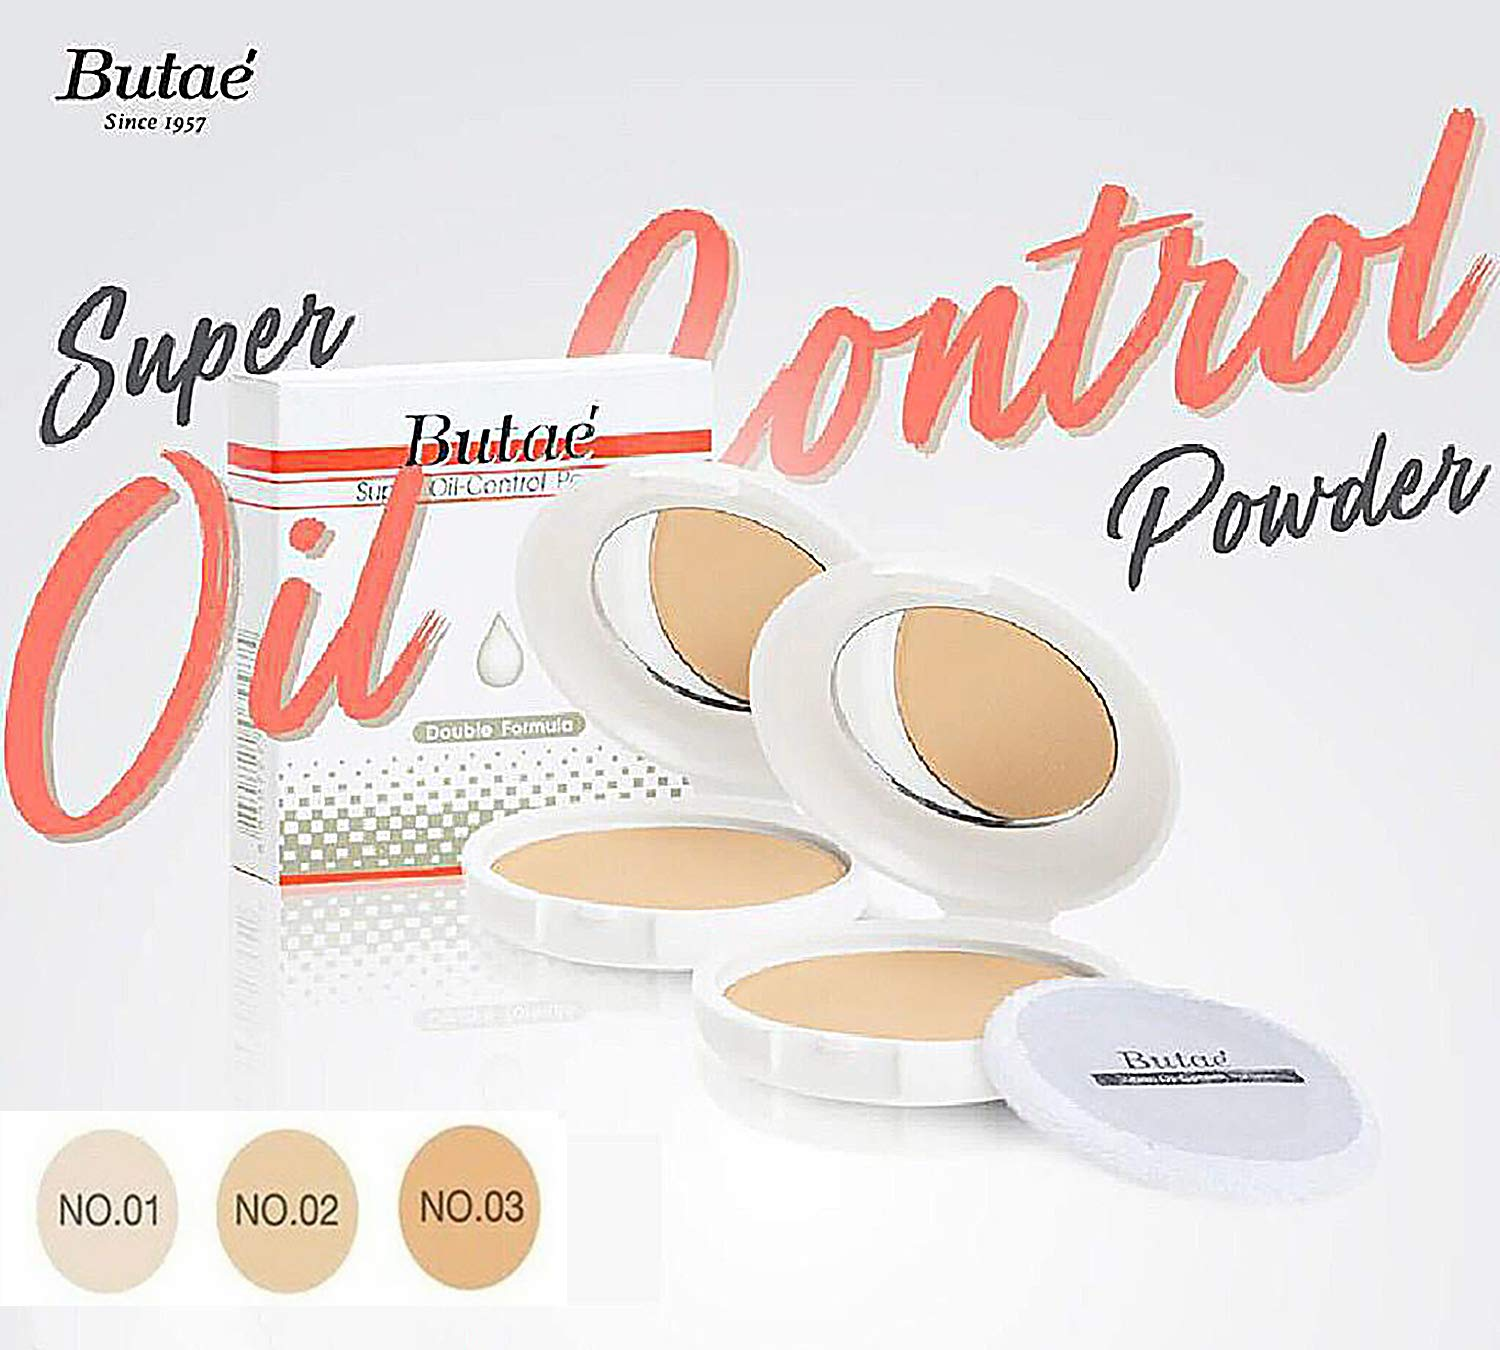 Super Oil Control Face Compact Foundation Powder loose Translucent Perfect Skin Smooth Radiance Oil-free Pressed Soft Beige Lightweight long-lasting Spf25 Sun Protect & Makeup Matte 0.50 Oz (14g)